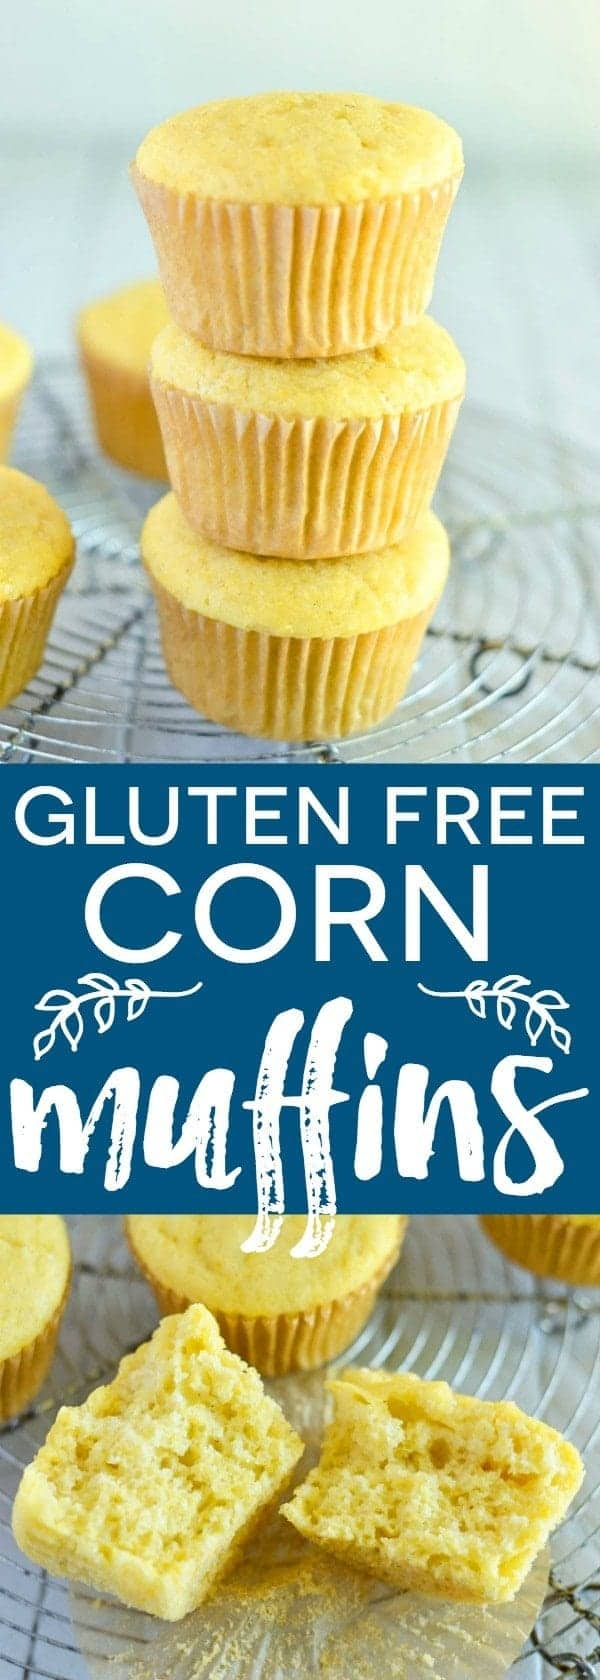 Easy Gluten Free Corn Muffin recipe from @whattheforkblog |gluten free and dairy free | whattheforkfoodblog.com